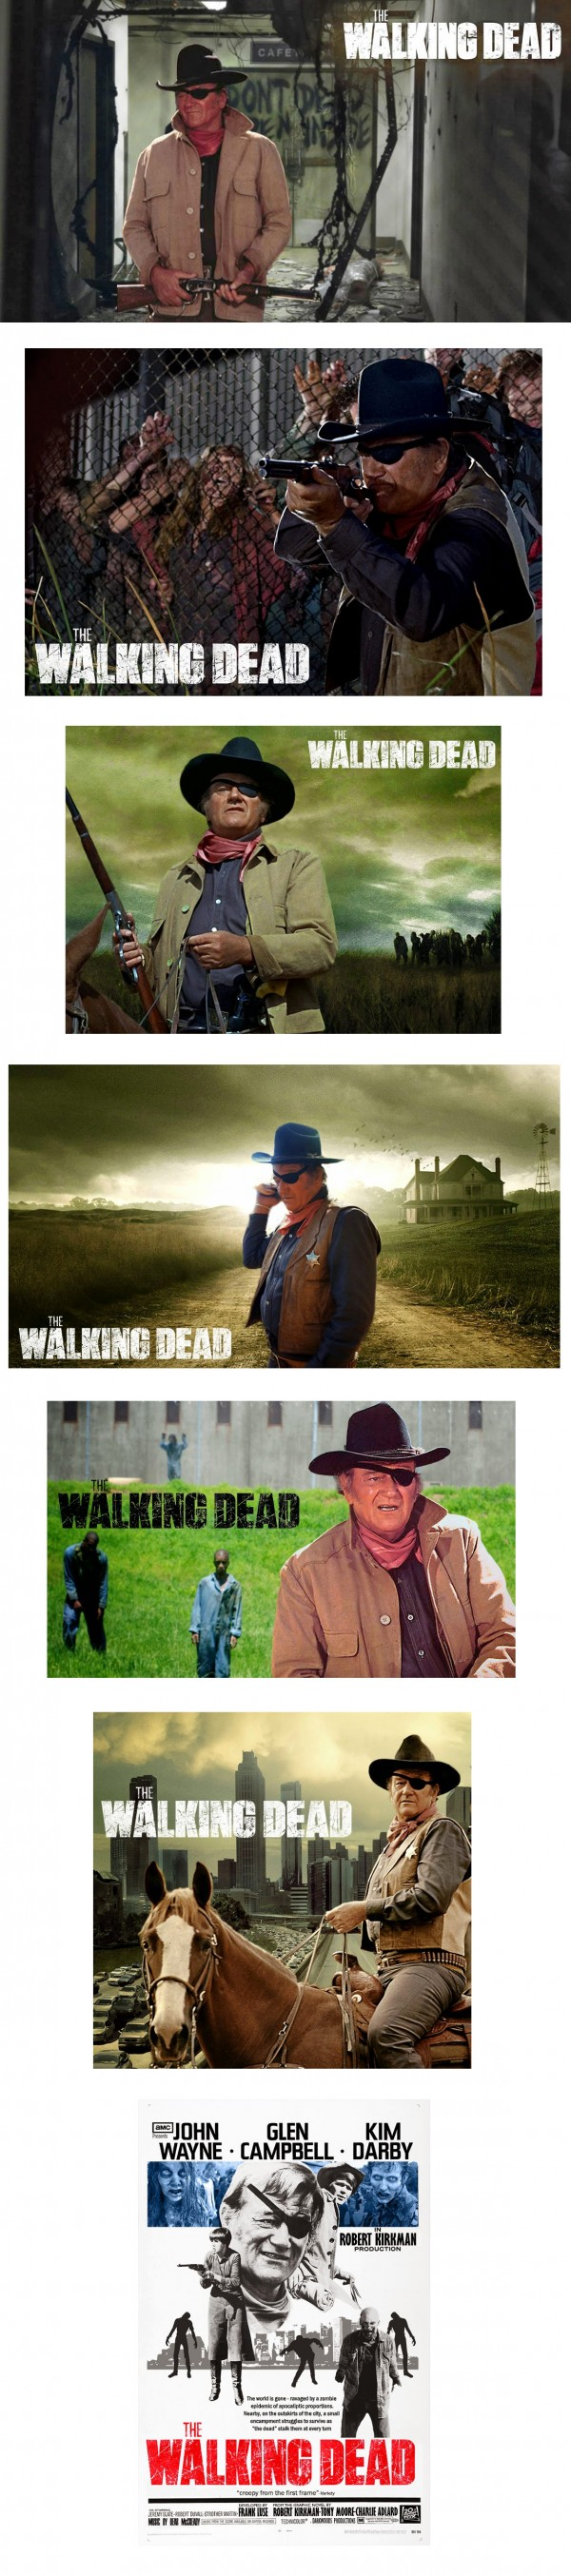 John Wayne protagonista en The Walking Dead